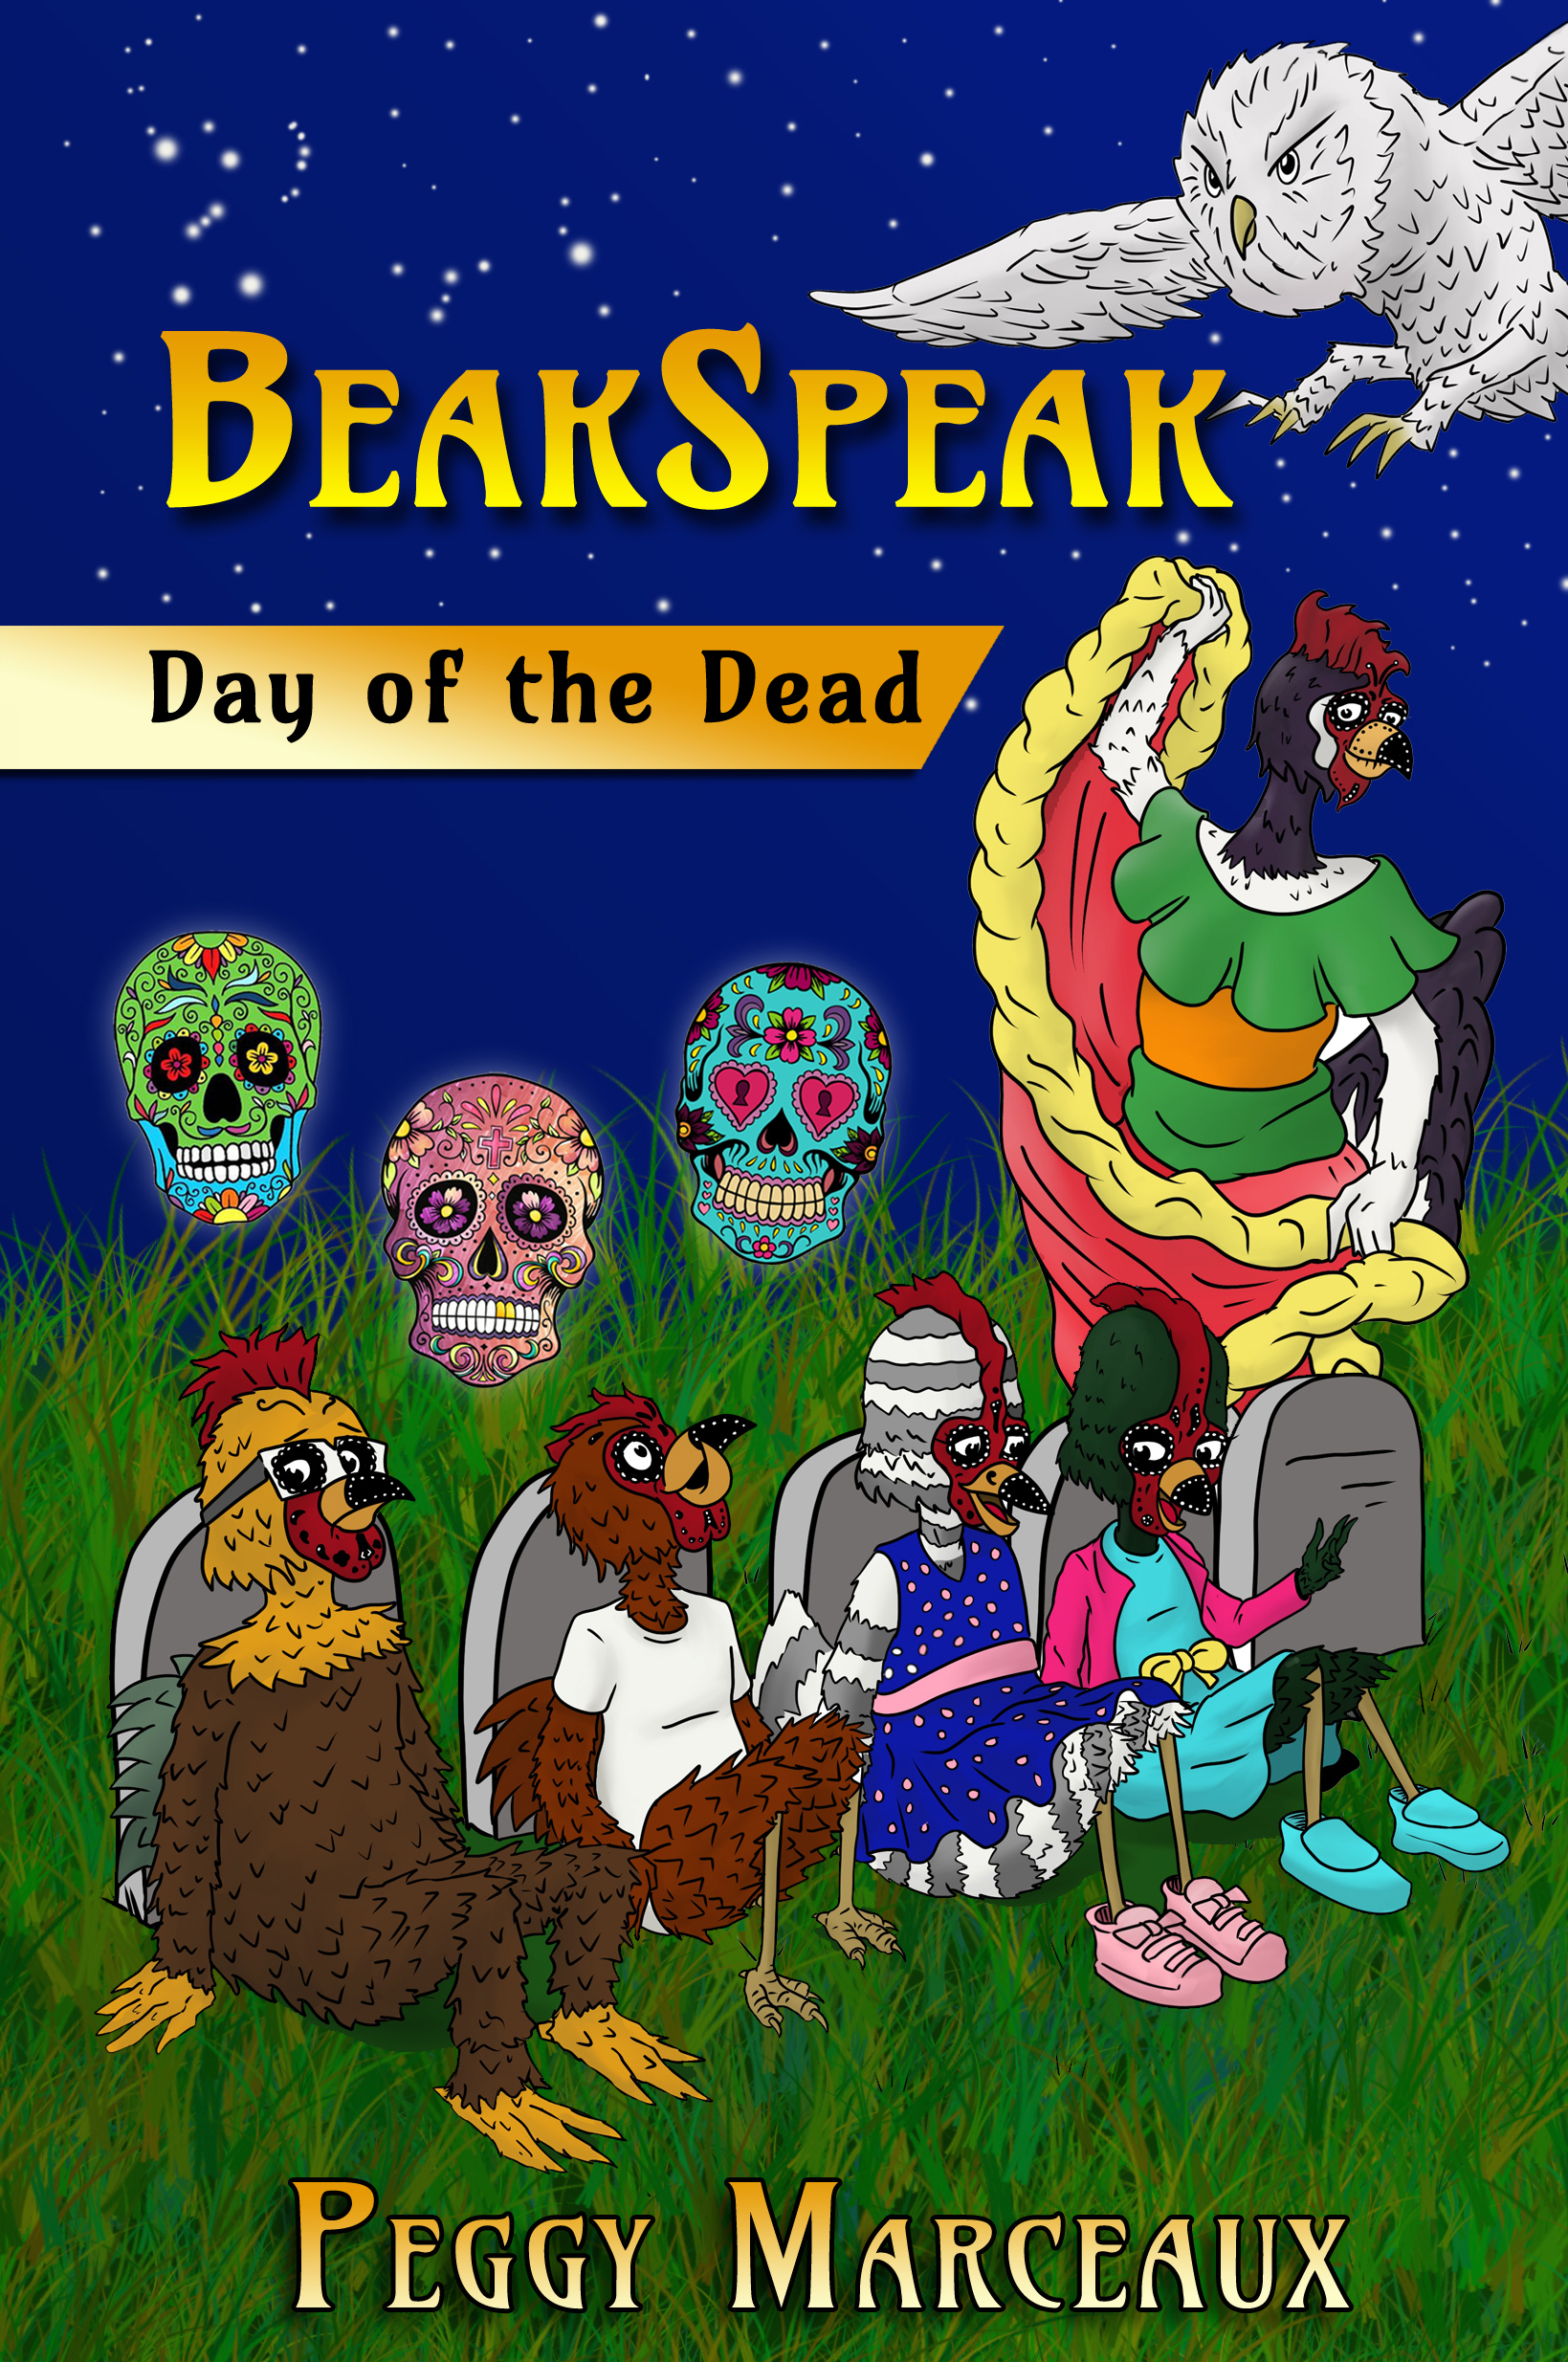 BeakSpeak 3: Day of the Dead by author Peggy Marceaux